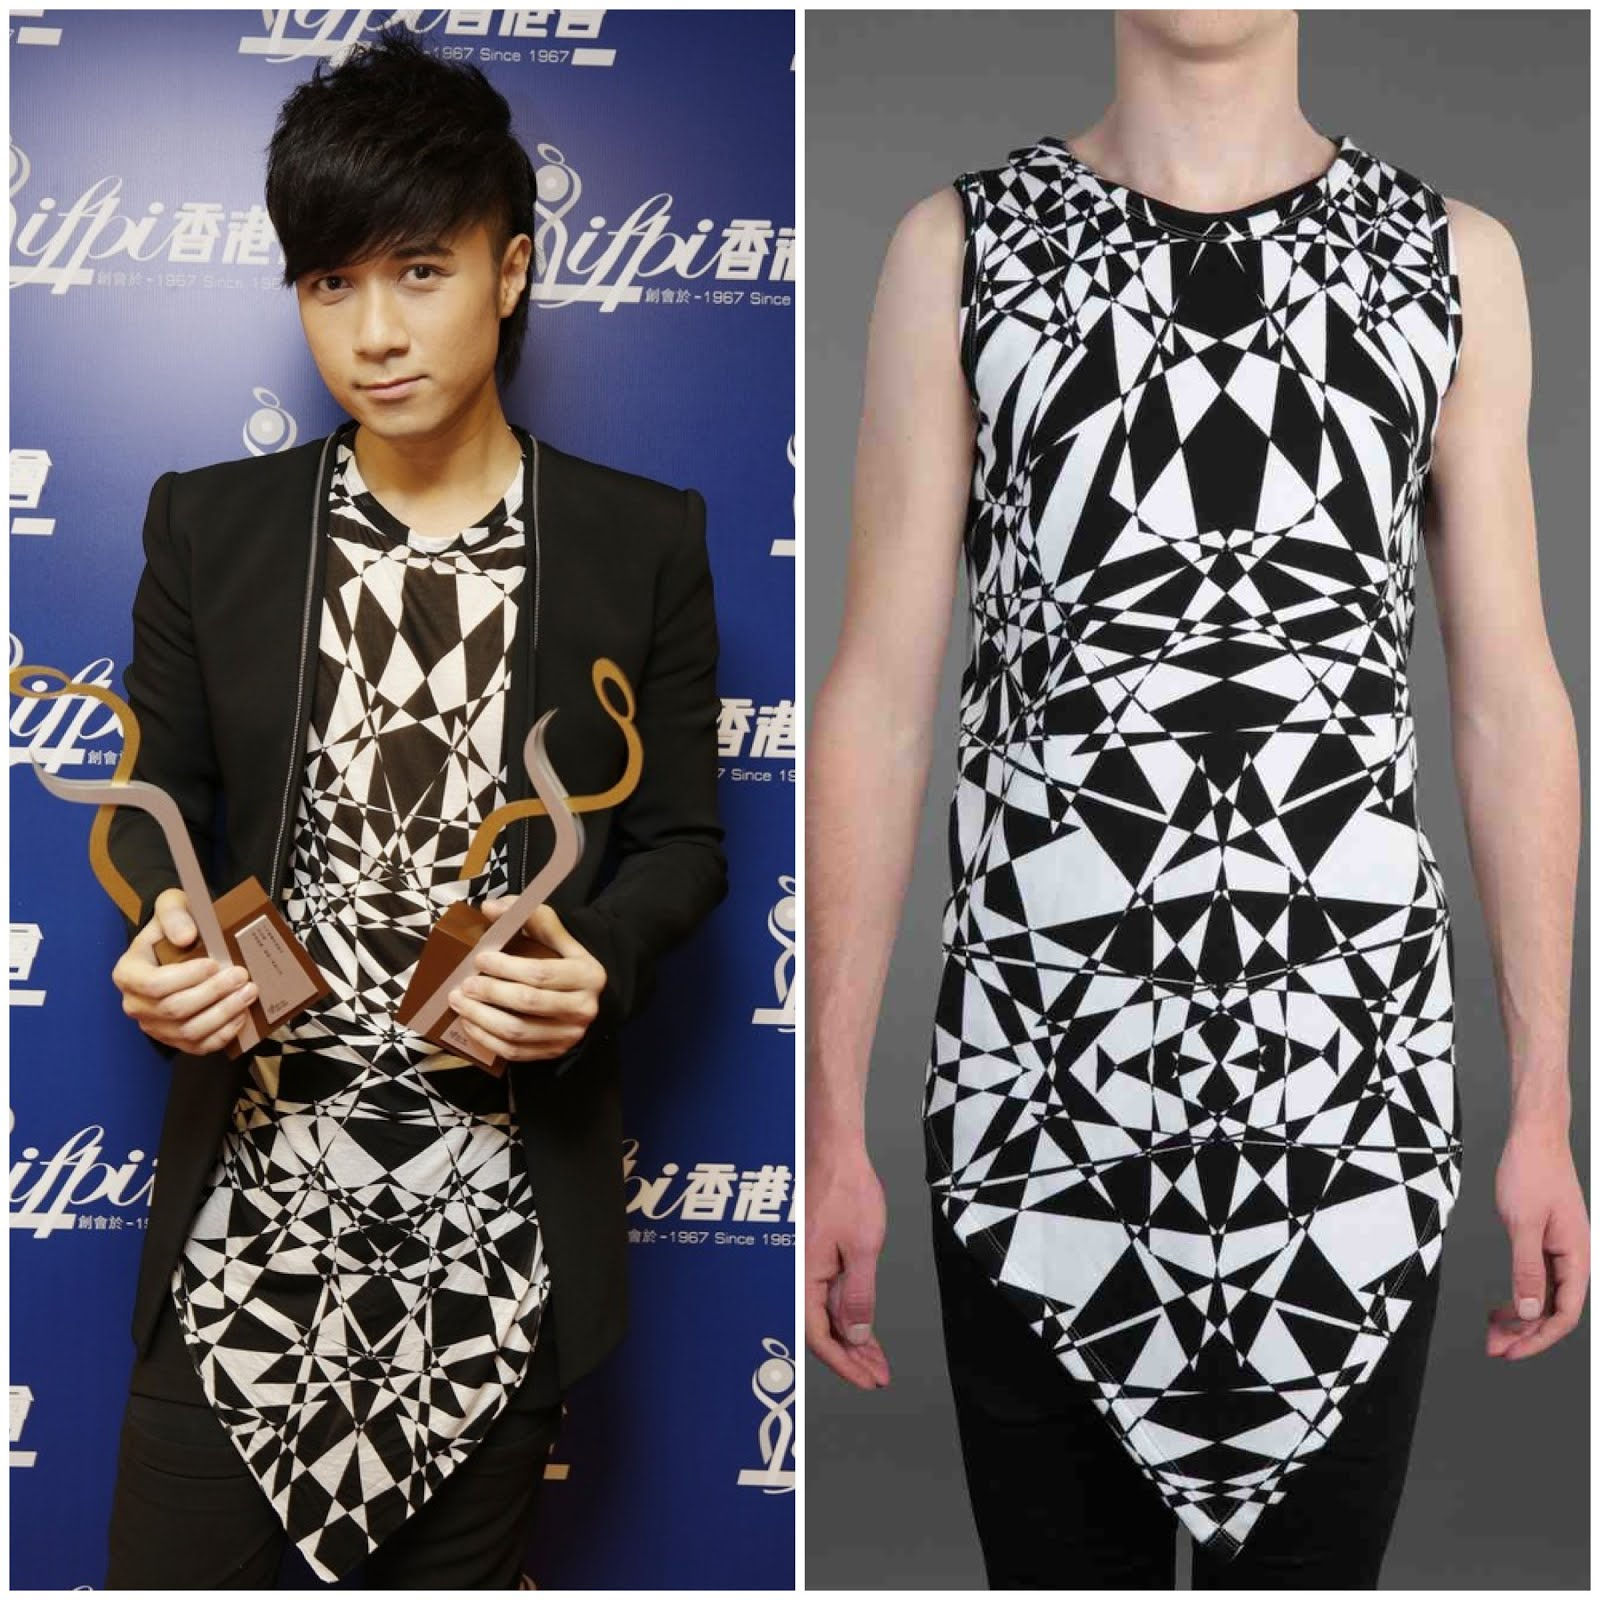 00O00 Menswear Blog Leo Ku [古巨基] in Gareth Pugh - 2013 IFPI Hong Kong Top Sales Music Awards